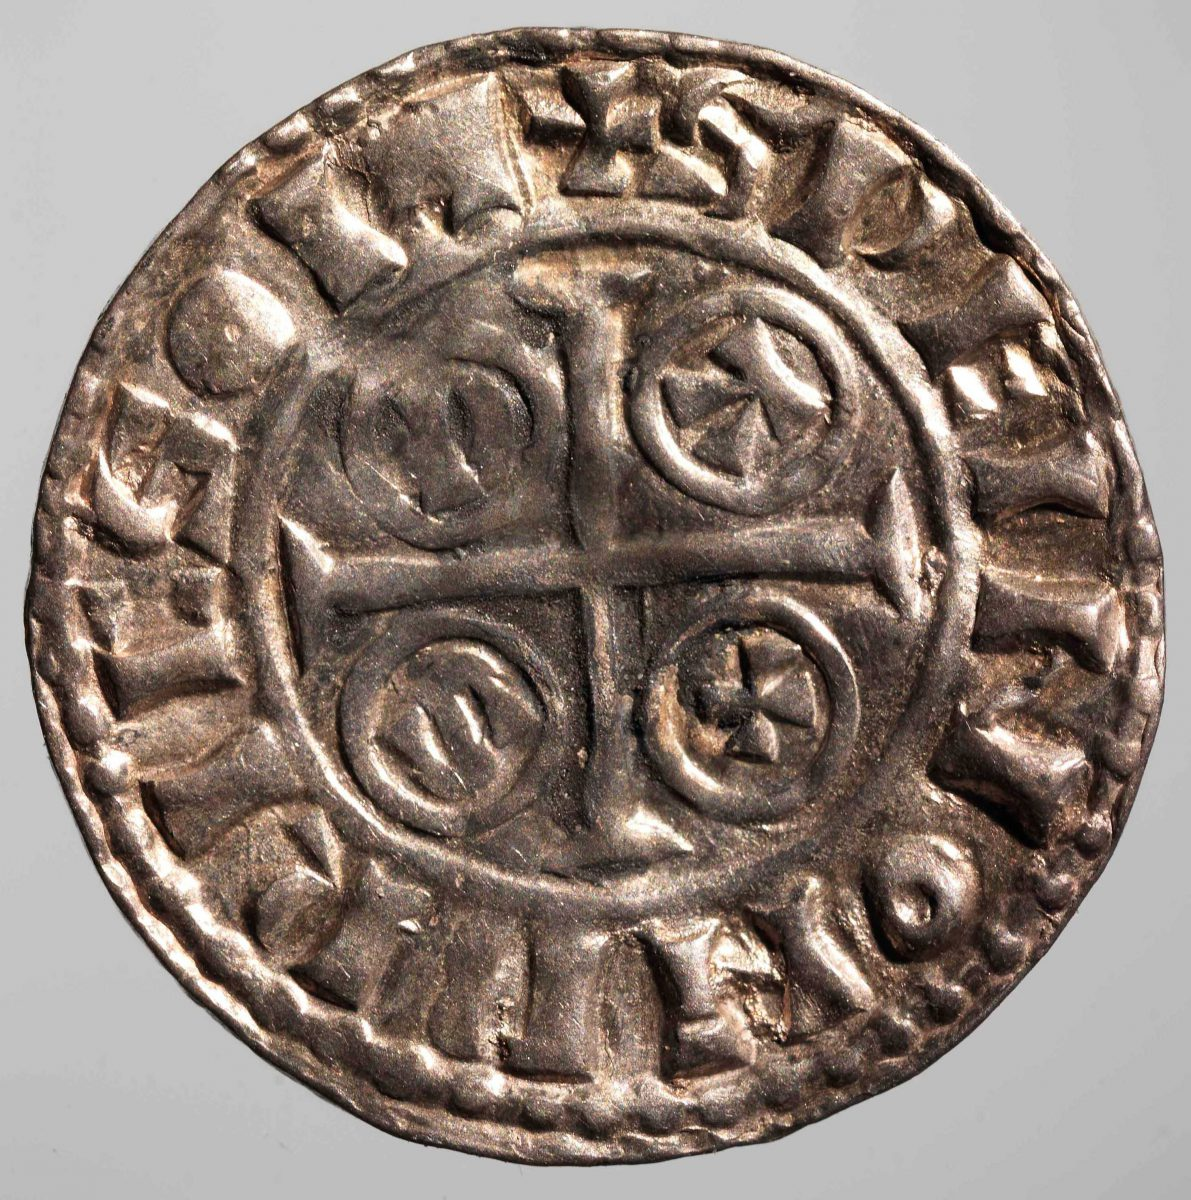 Silver pennies from William the Conqueror